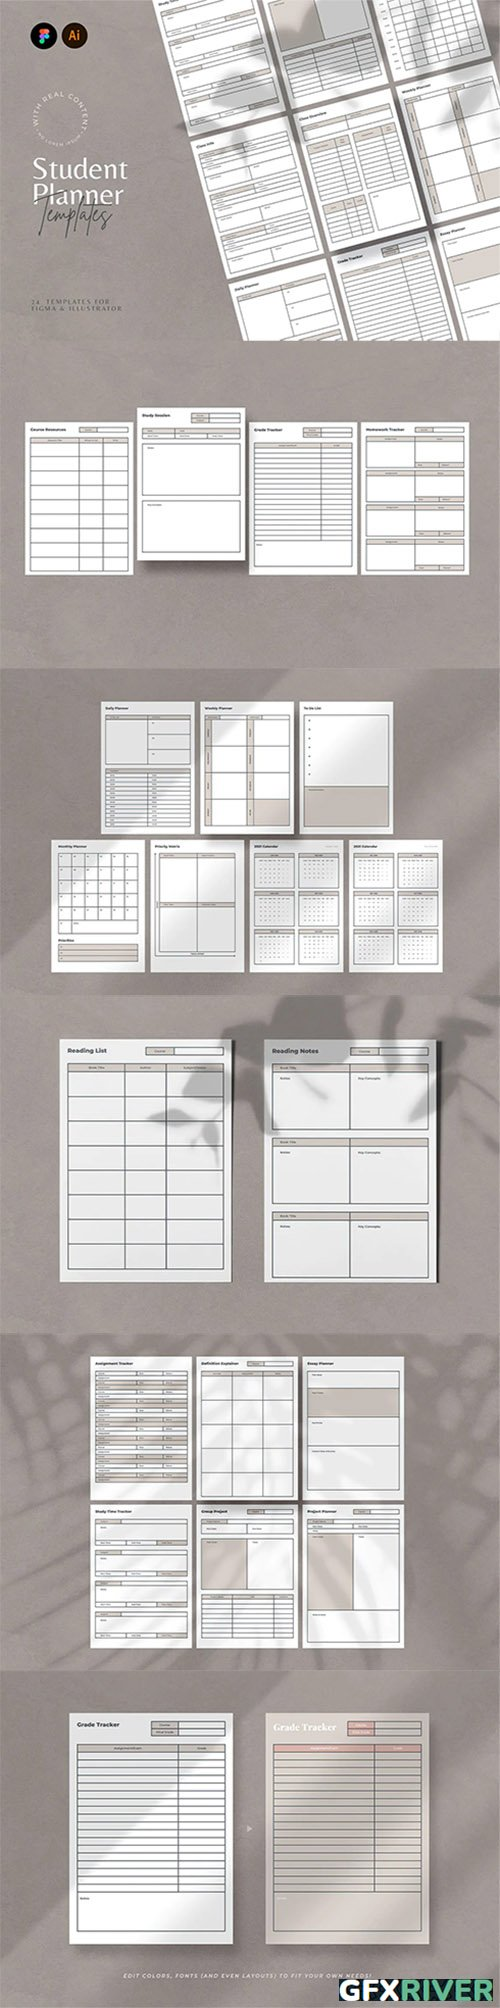 Student Planner Templates